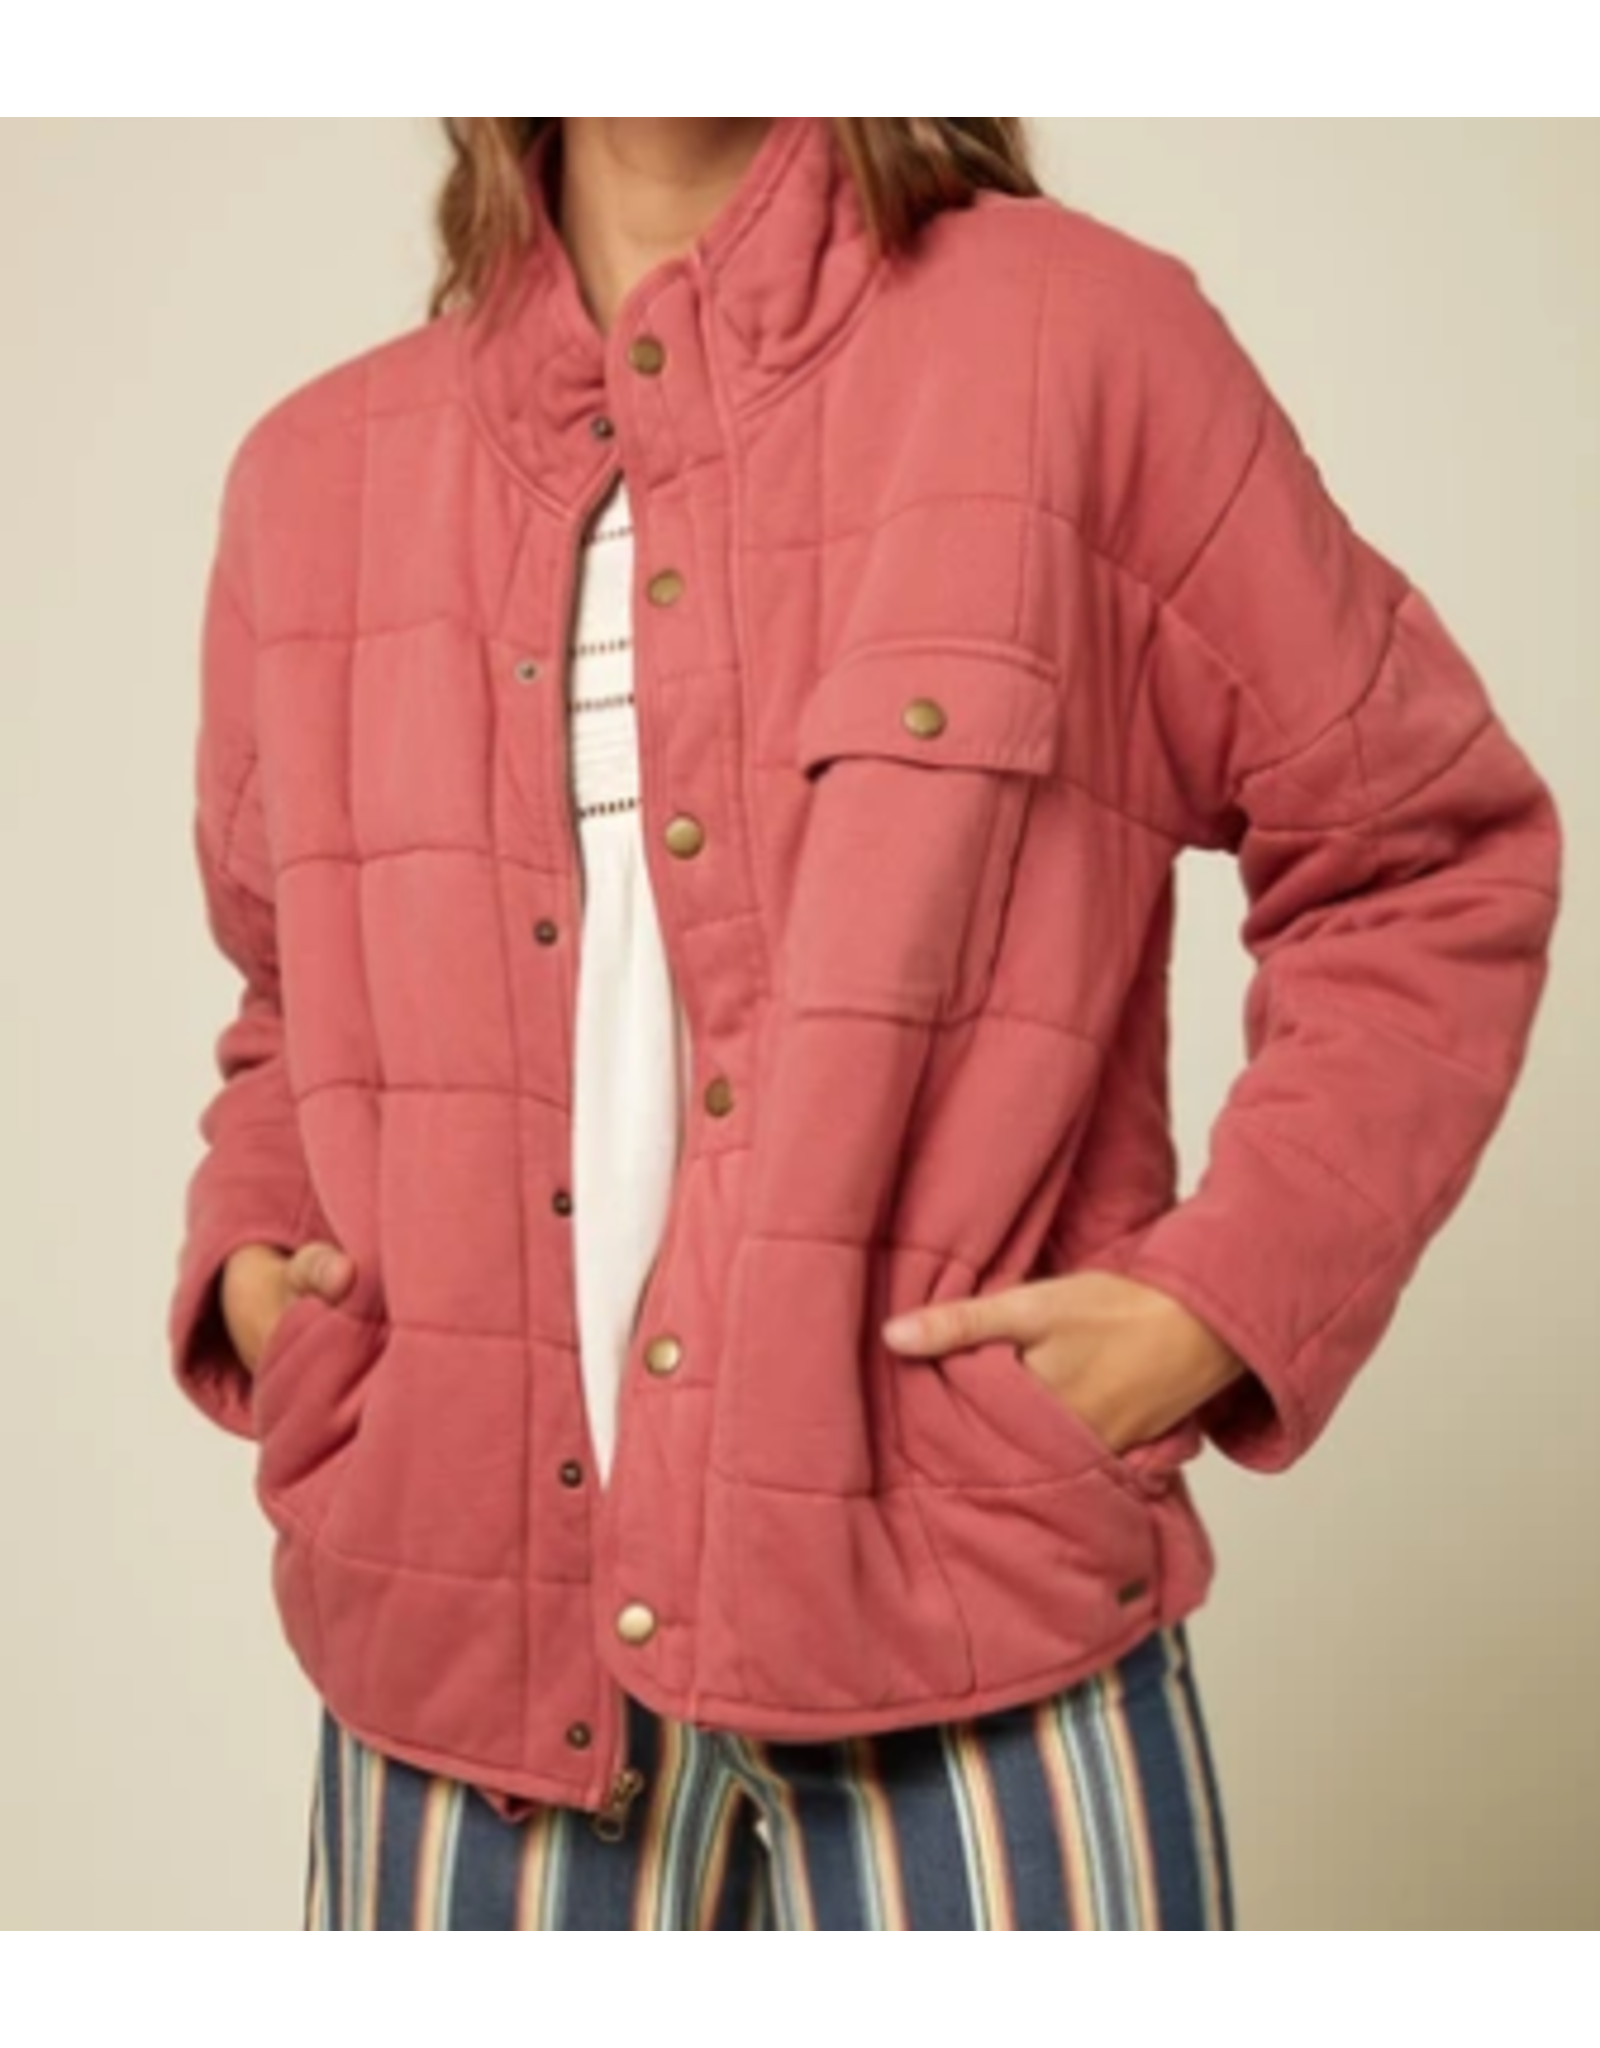 MABLE KNIT-FADED ROSE, M